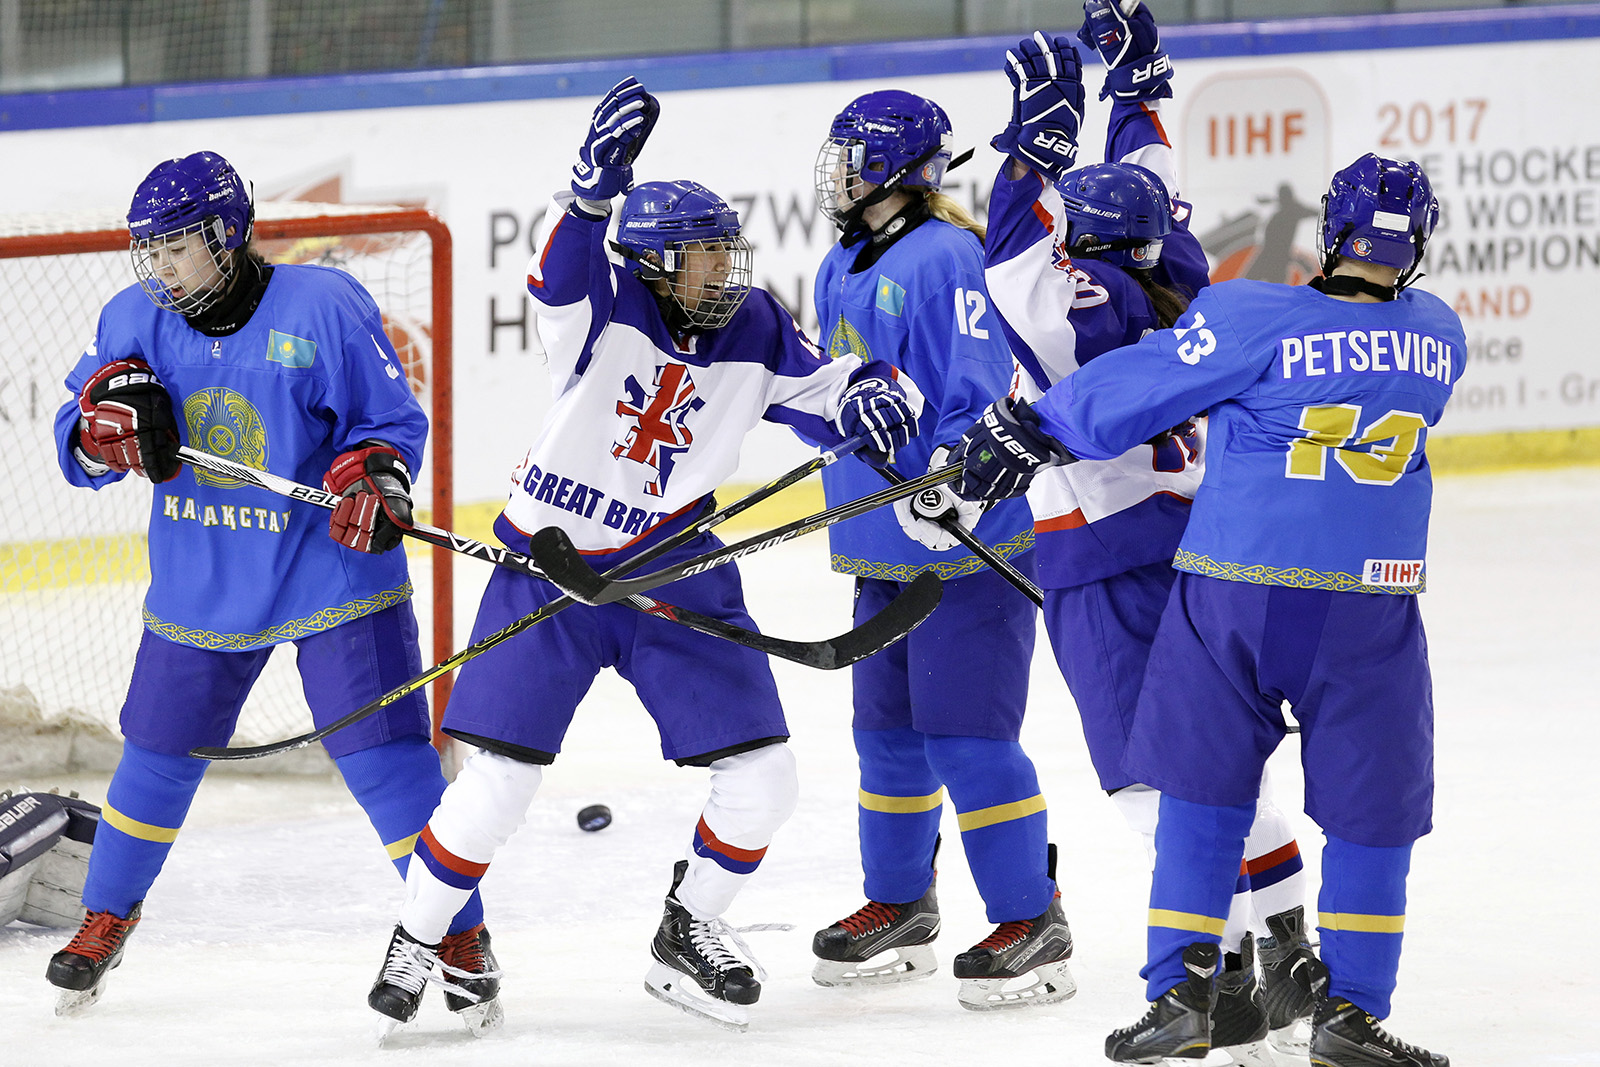 2017.01.14 KATOWICE ICE HOCKEY U18 WOMENS WORLD CHAMPIONSHIP POLAND KATOWICE DIVISION I - GROUP B KAZAKHSTAN - GREAT BRITAIN ON THE PICTURE - KATHRYN MARSDEN (GBR) CELEBRATE FOT. MICHAL CHWIEDUK